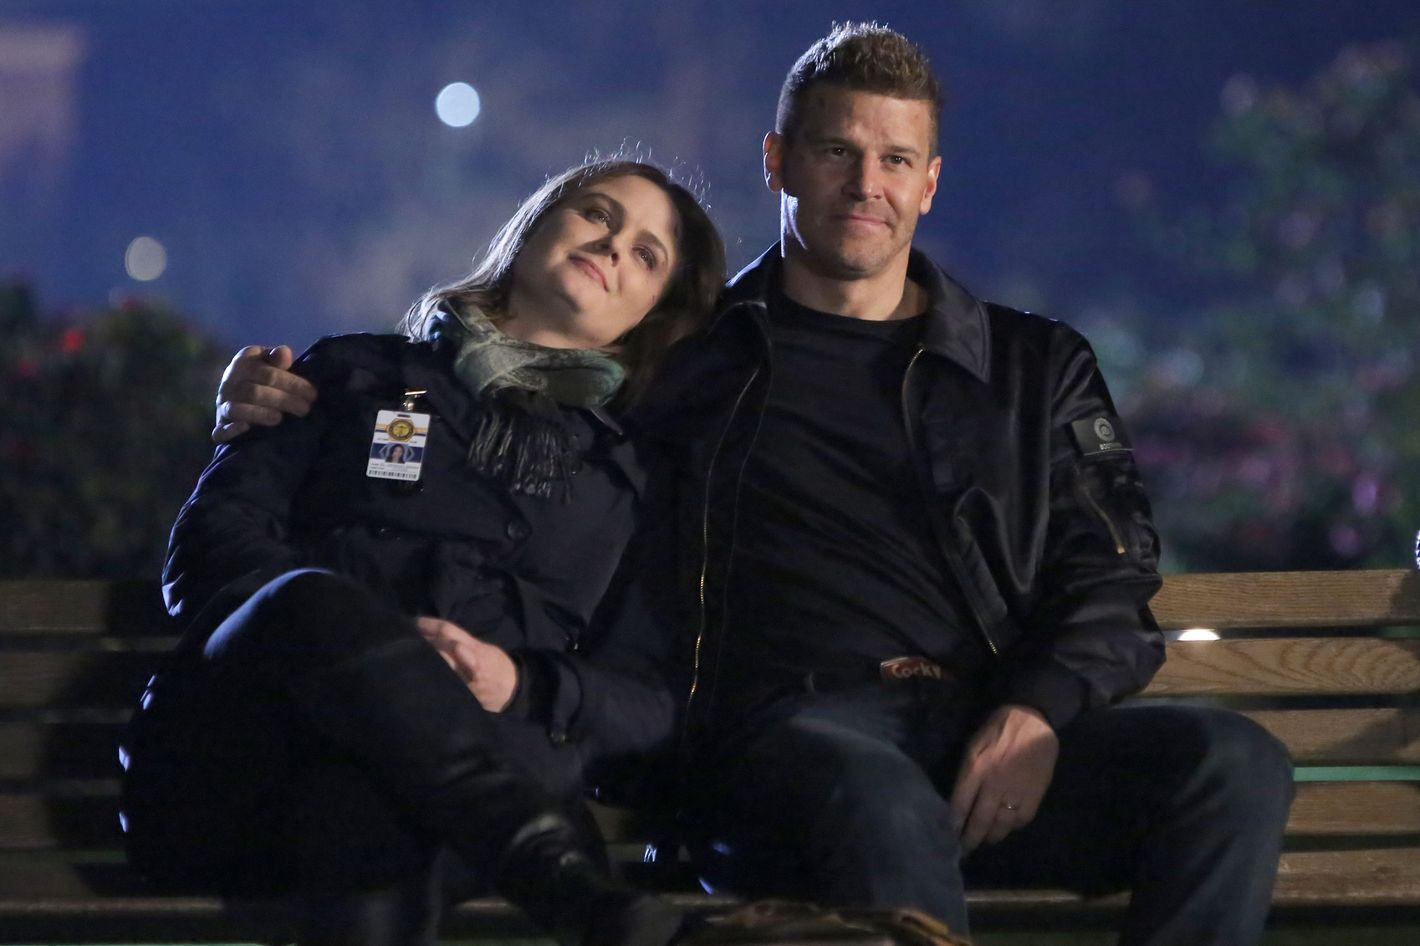 Bones' Booth and Brennan: Their Love Story in 12 Episodes